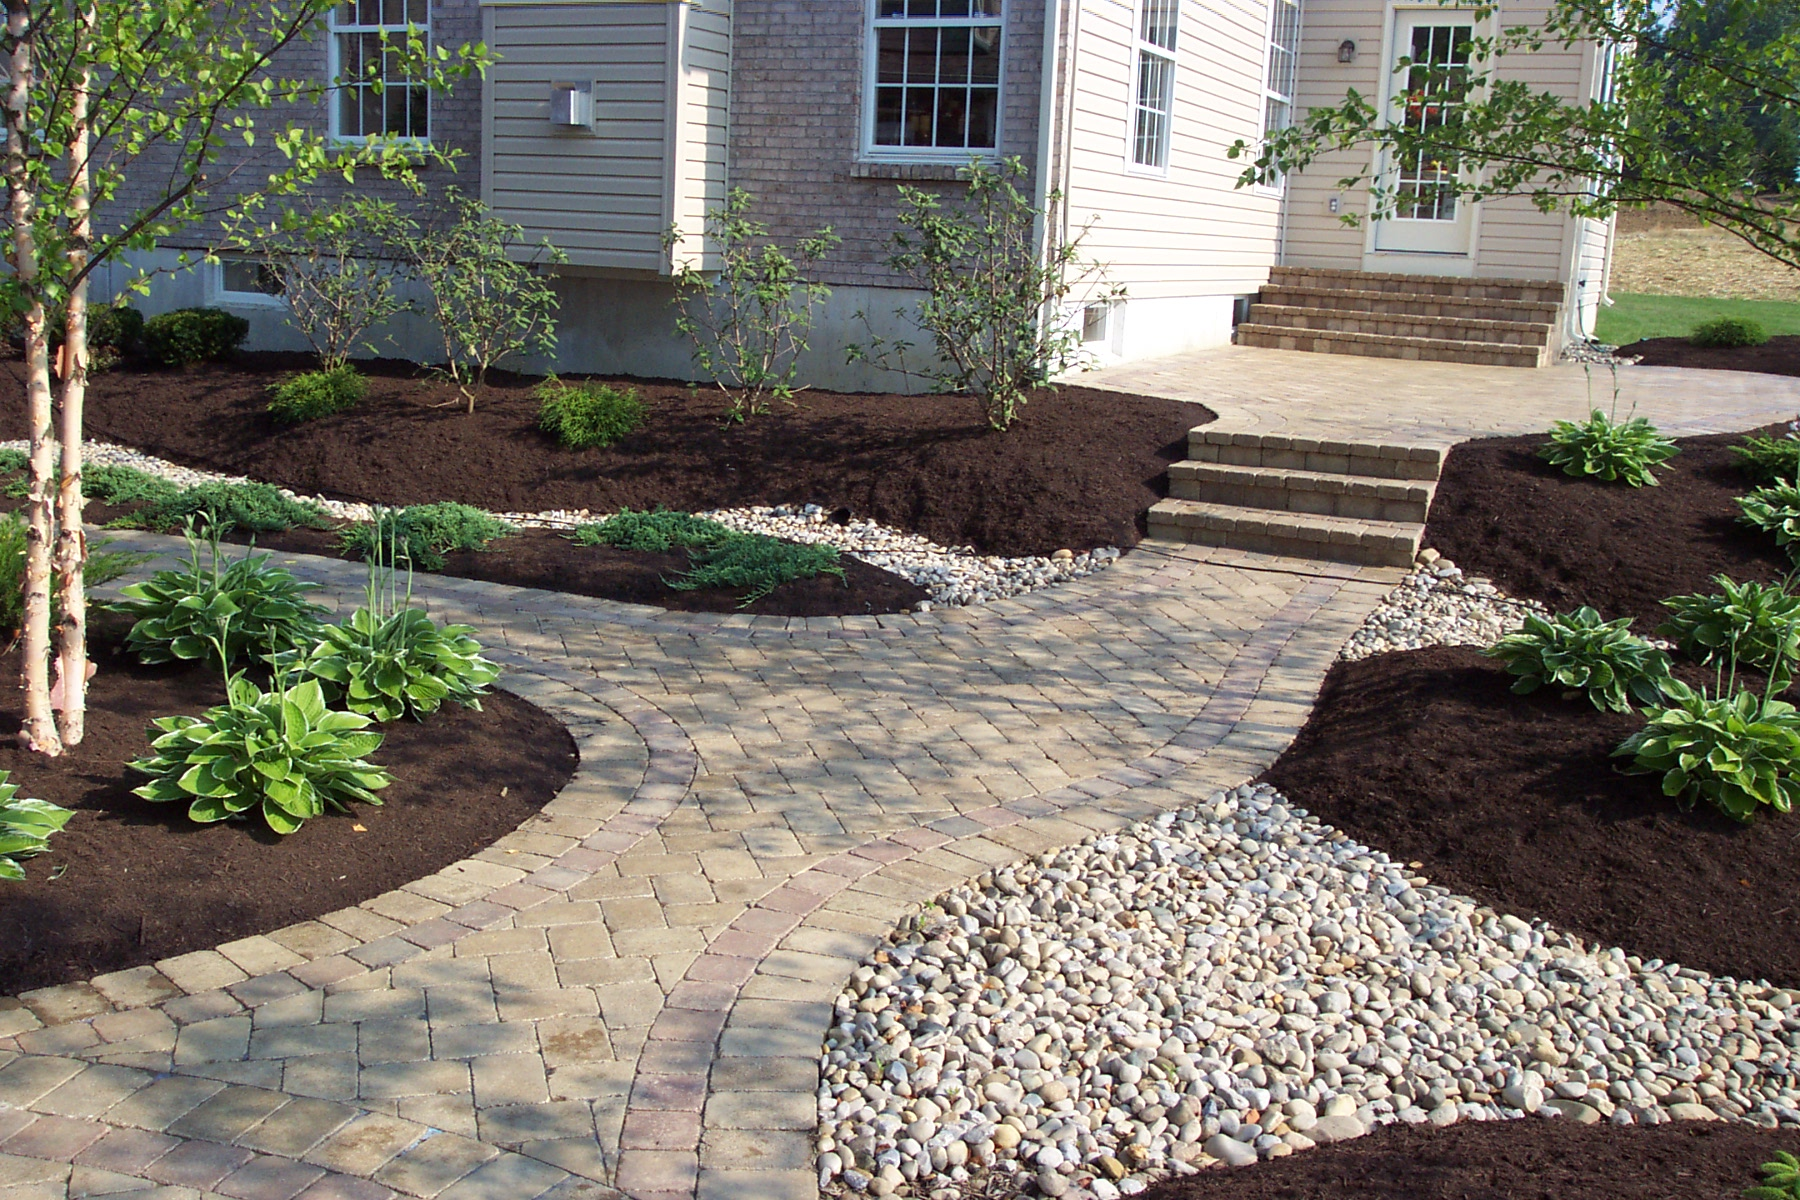 Hardscaping Dry Garden Landscaping Ideas : Olympic lawns hardscaping services